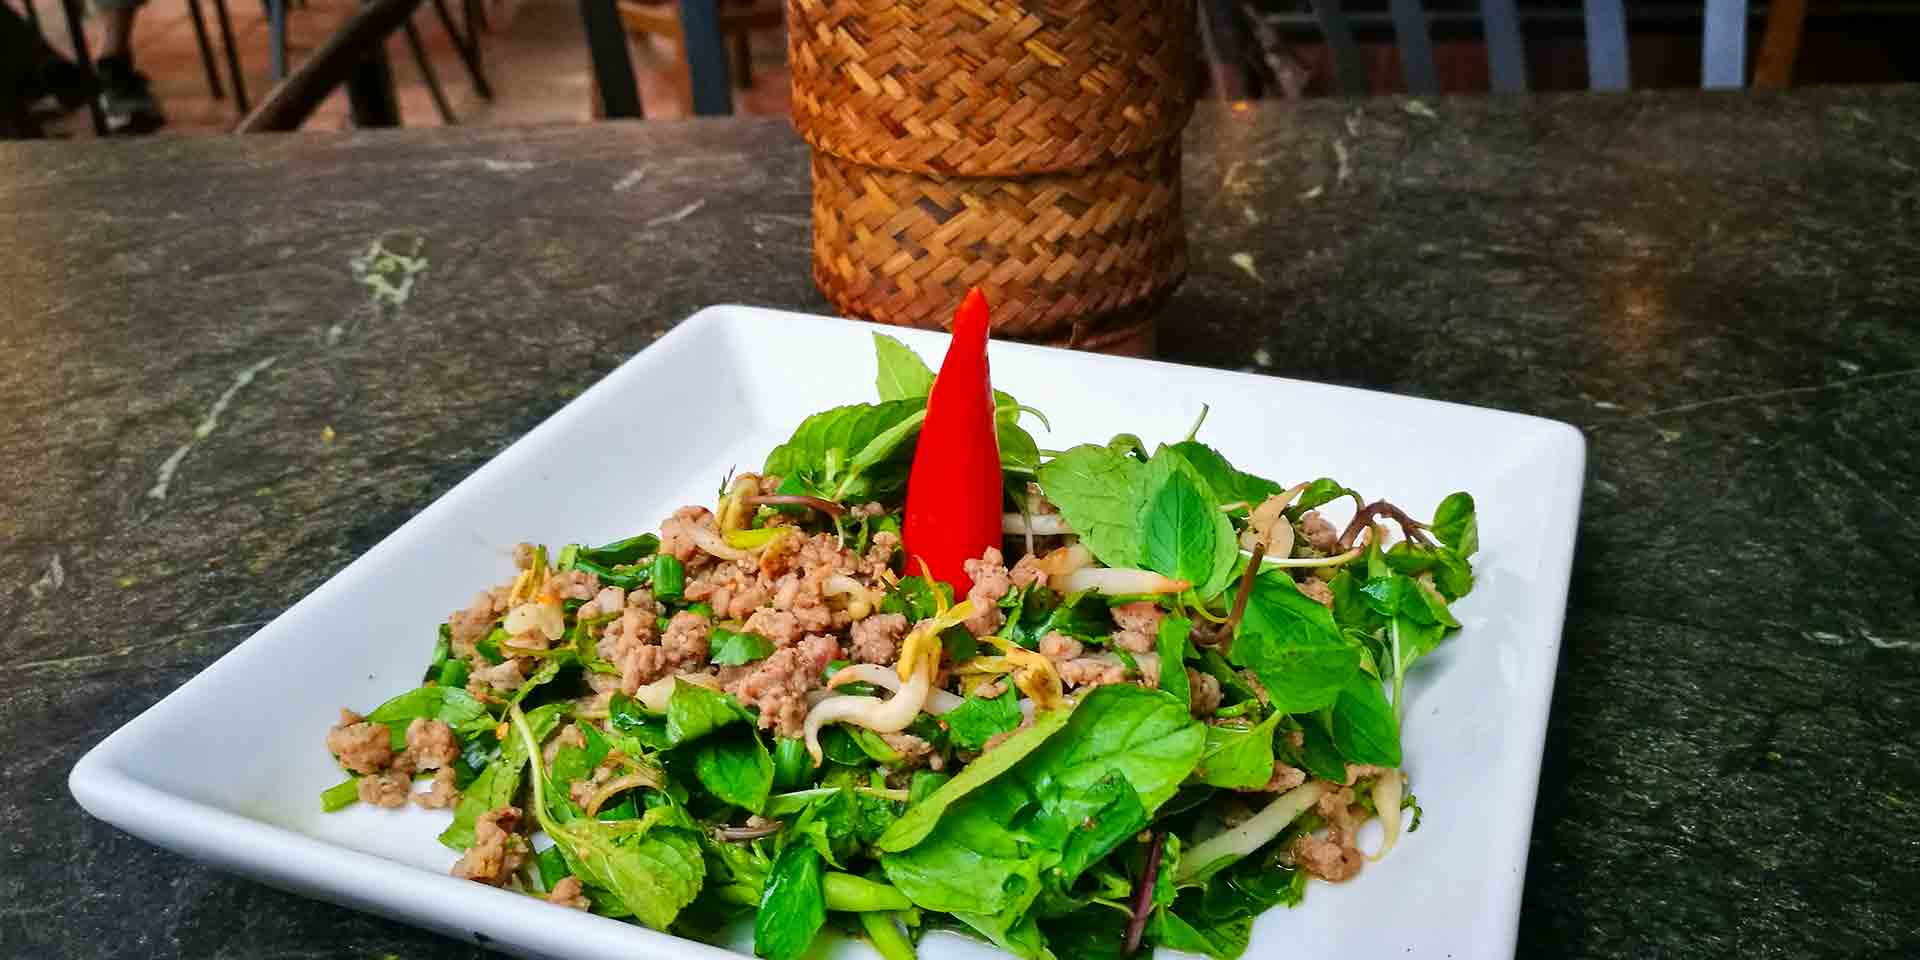 Cuisine in Laos